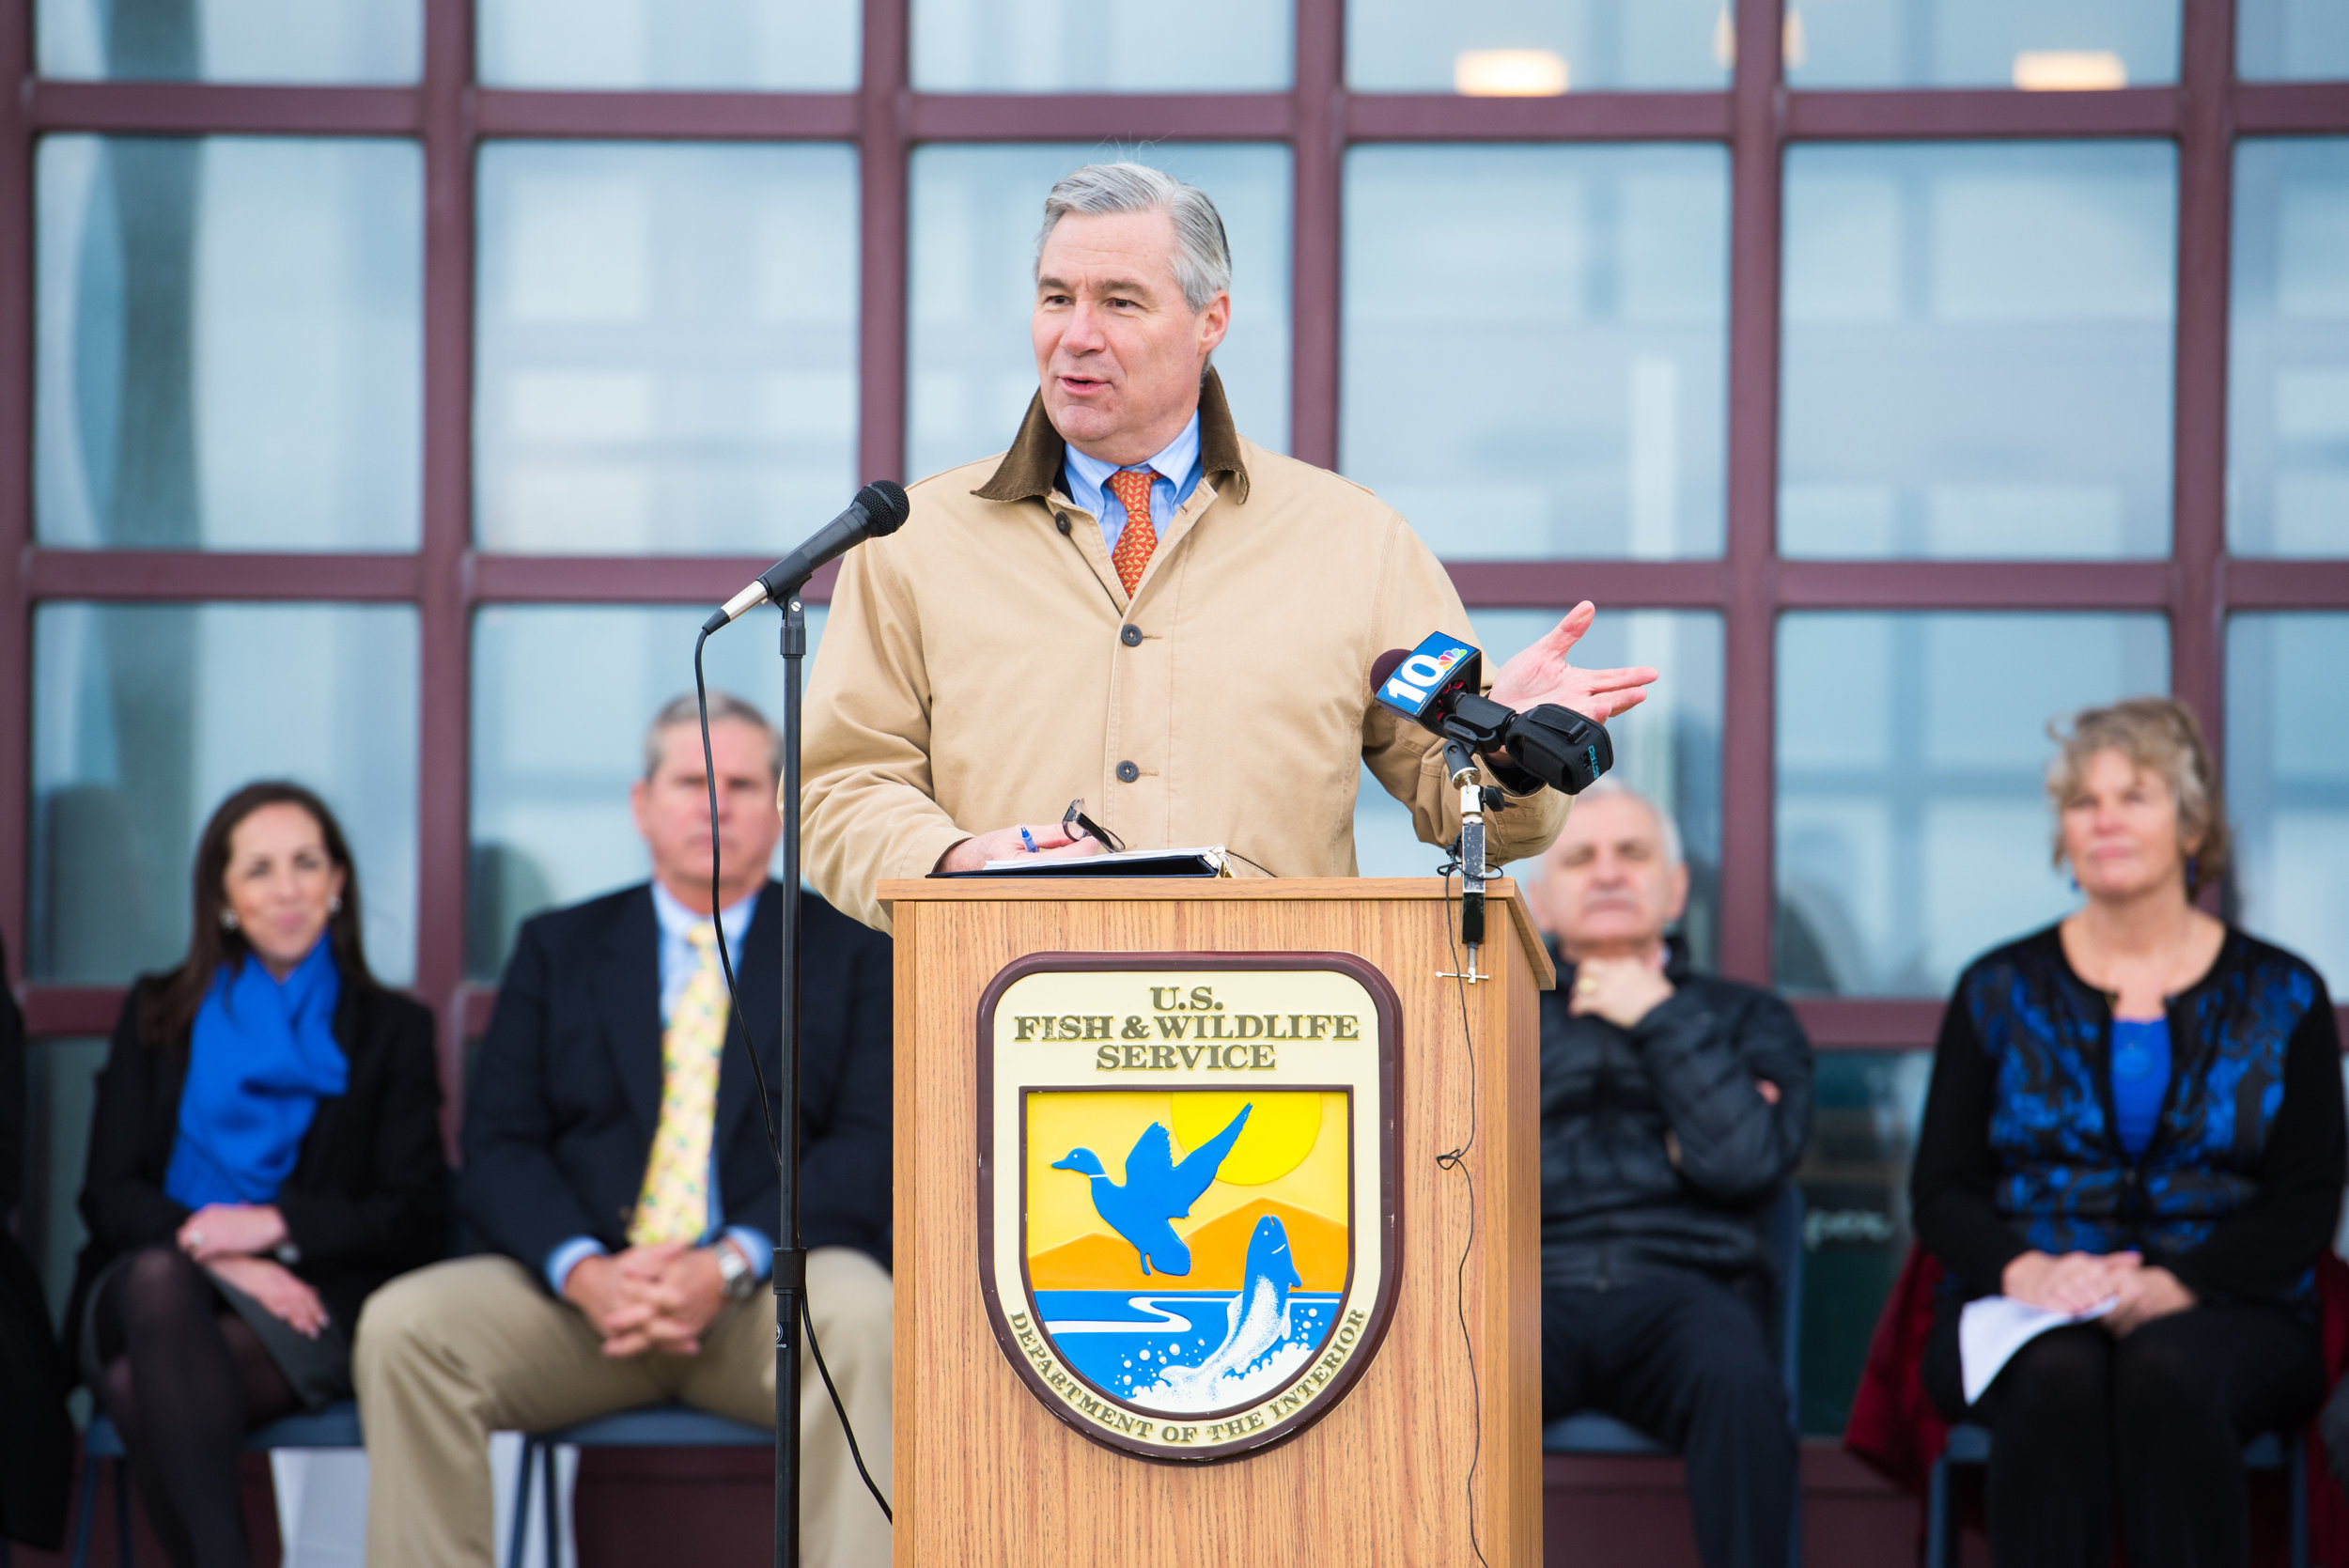 U.S. Senator for Rhode Island Sheldon Whitehouse addressing the community at the project completion ceremony.  Photo courtesy Andrea Hansen Photography.